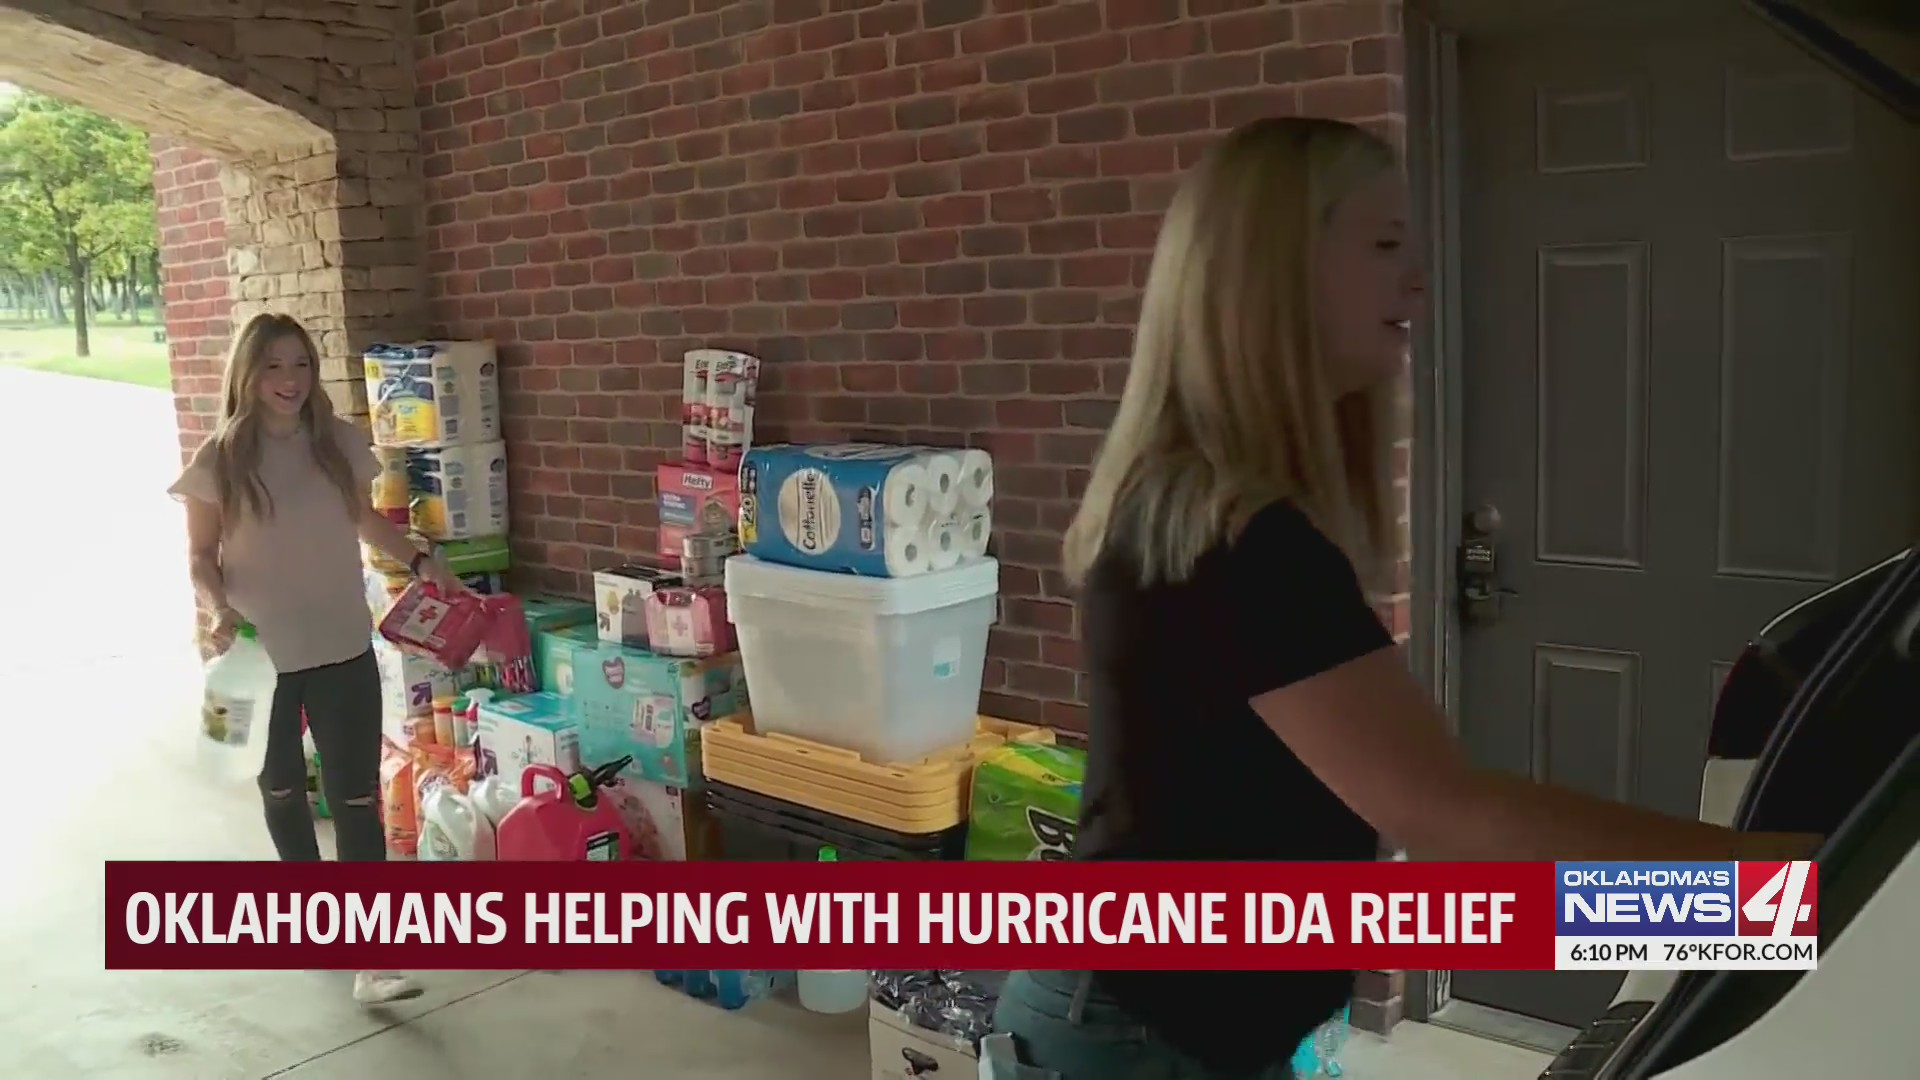 Erin Glomset and Carly McDavid pack care full of supplies for displaced Louisianans following Hurricane Ida